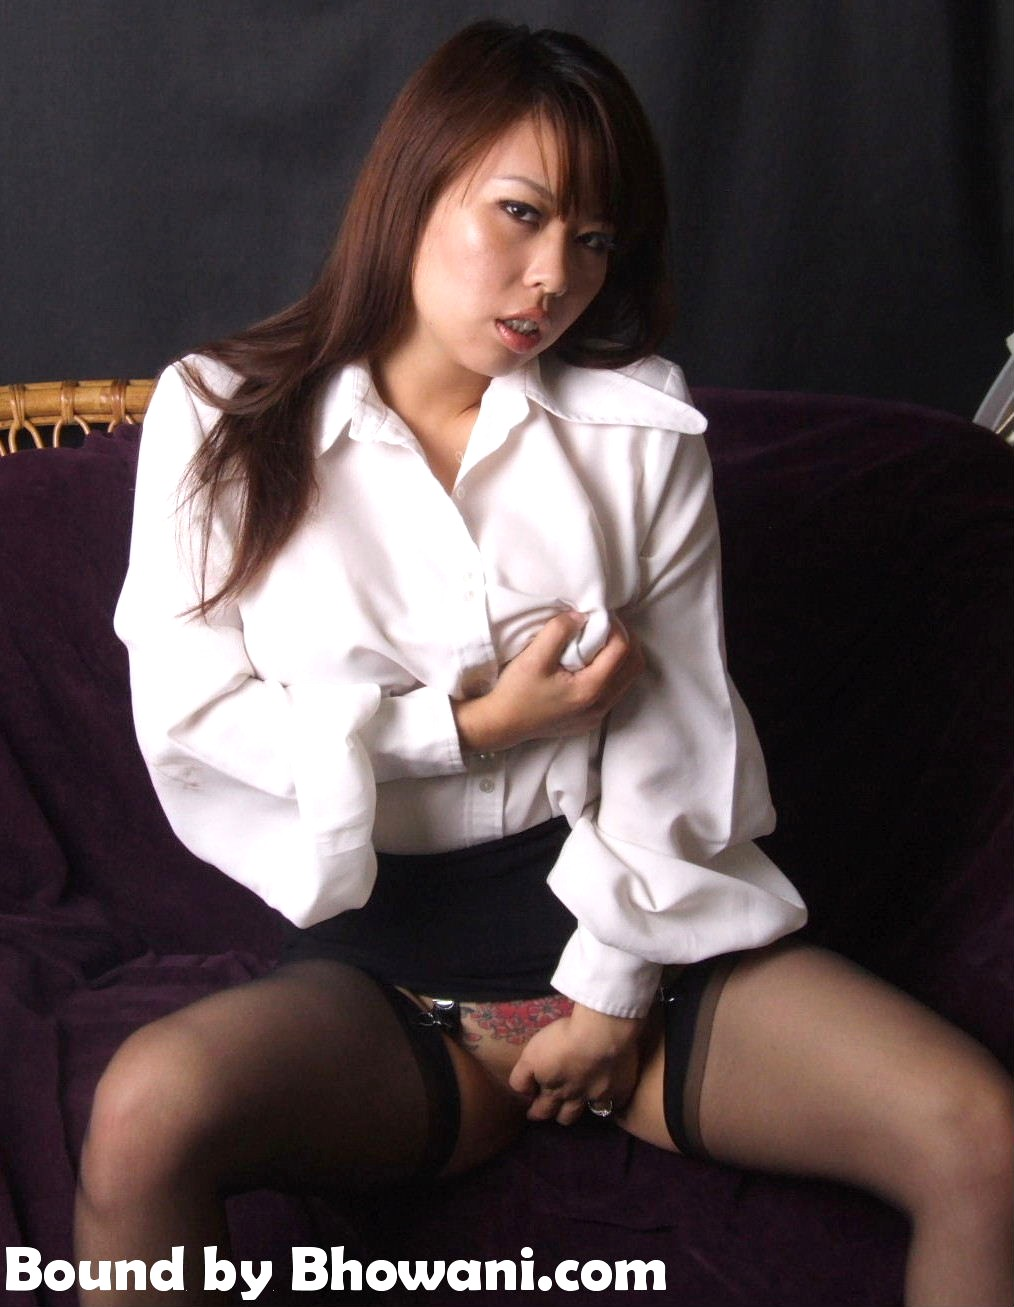 Of Blouses, Blindfolds and Blowjobs 1